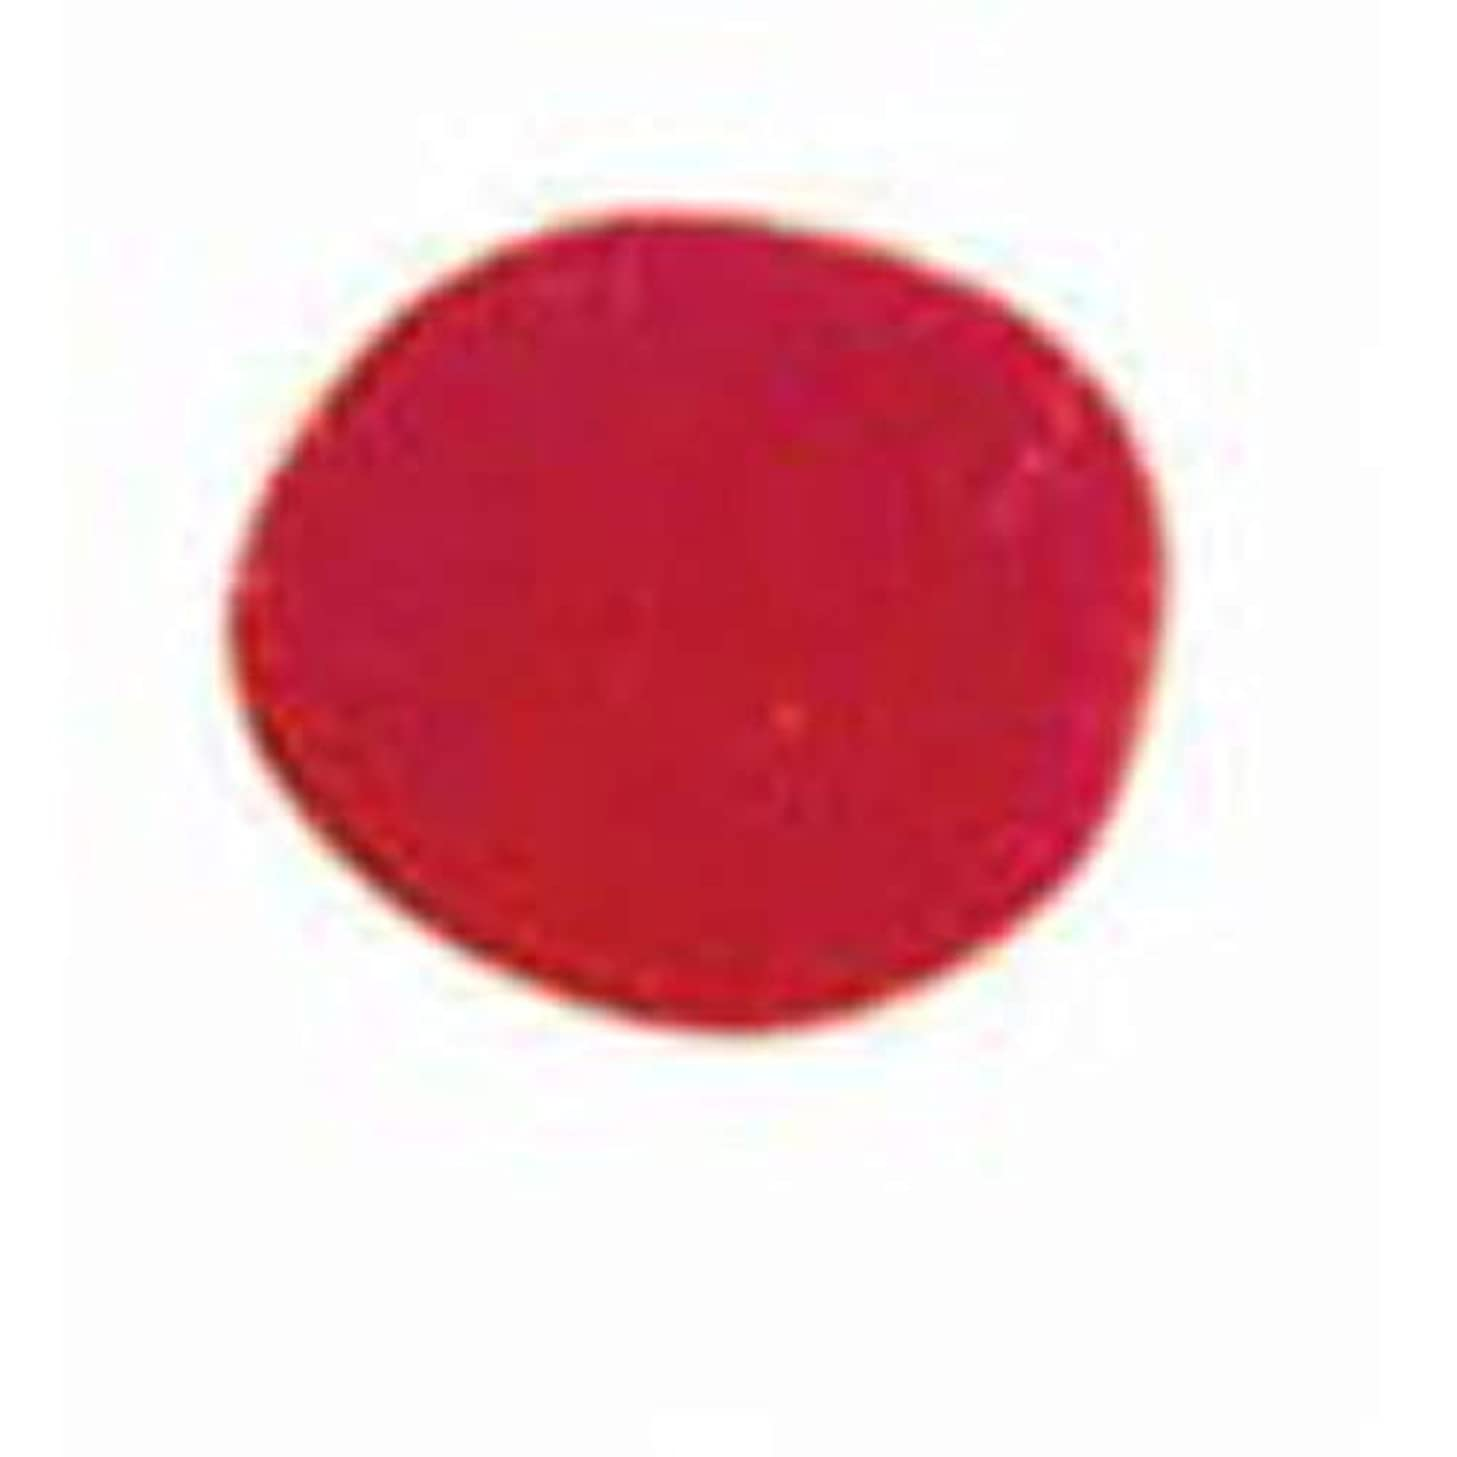 Bulk Buy: Darice DIY Crafts Acrylic Pom Poms Red 2 inches 8 pieces (6-Pack) 10179-30